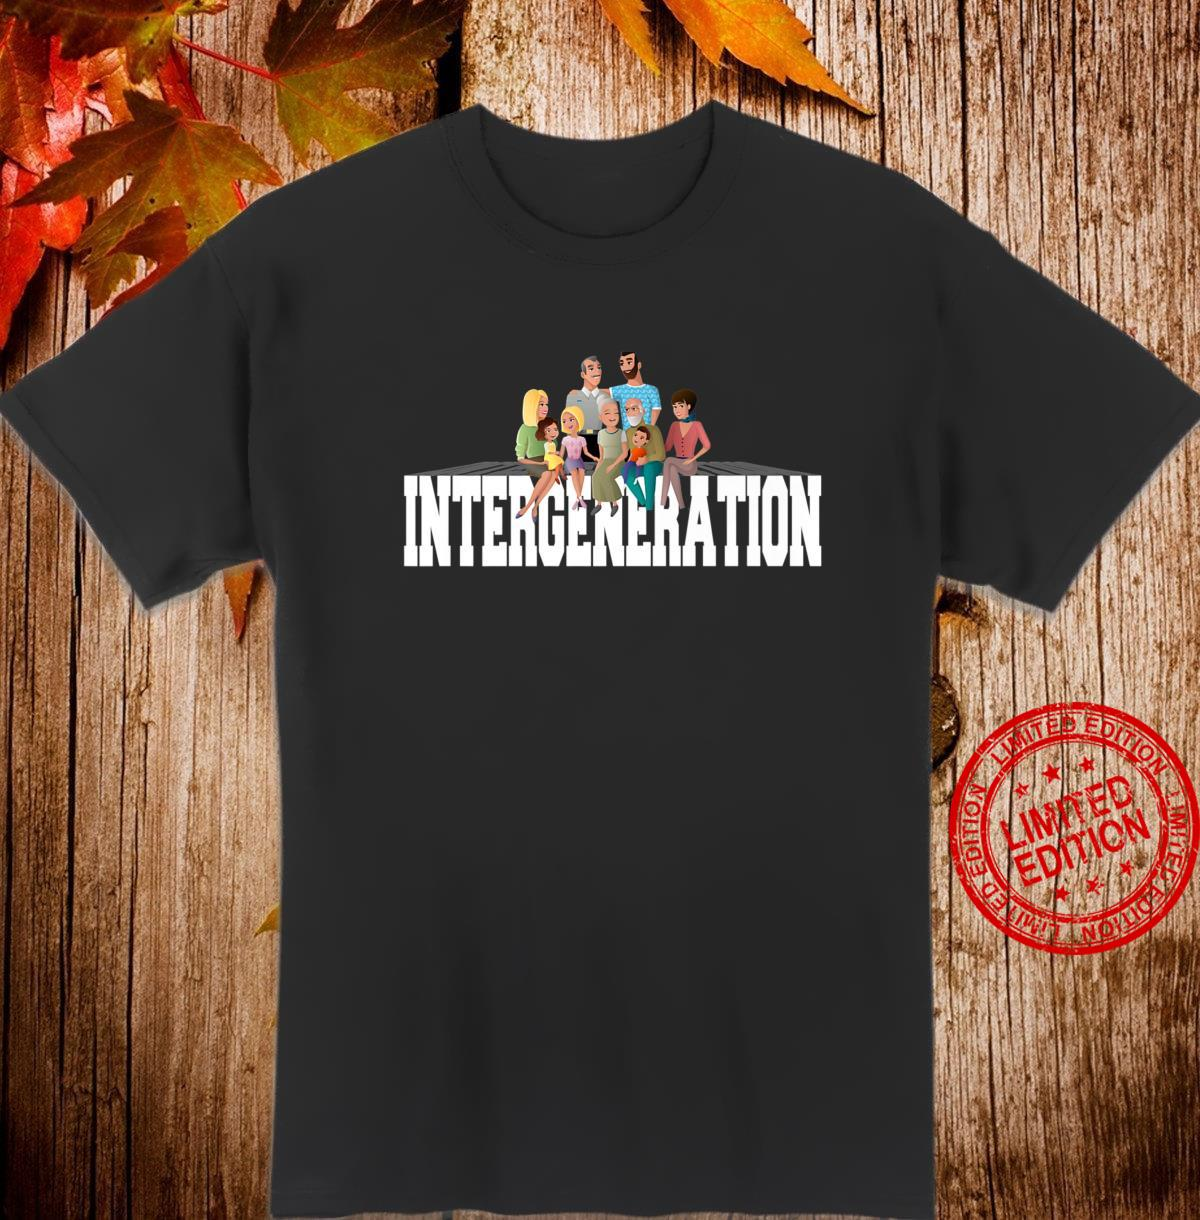 Intergeneration Month Shirt